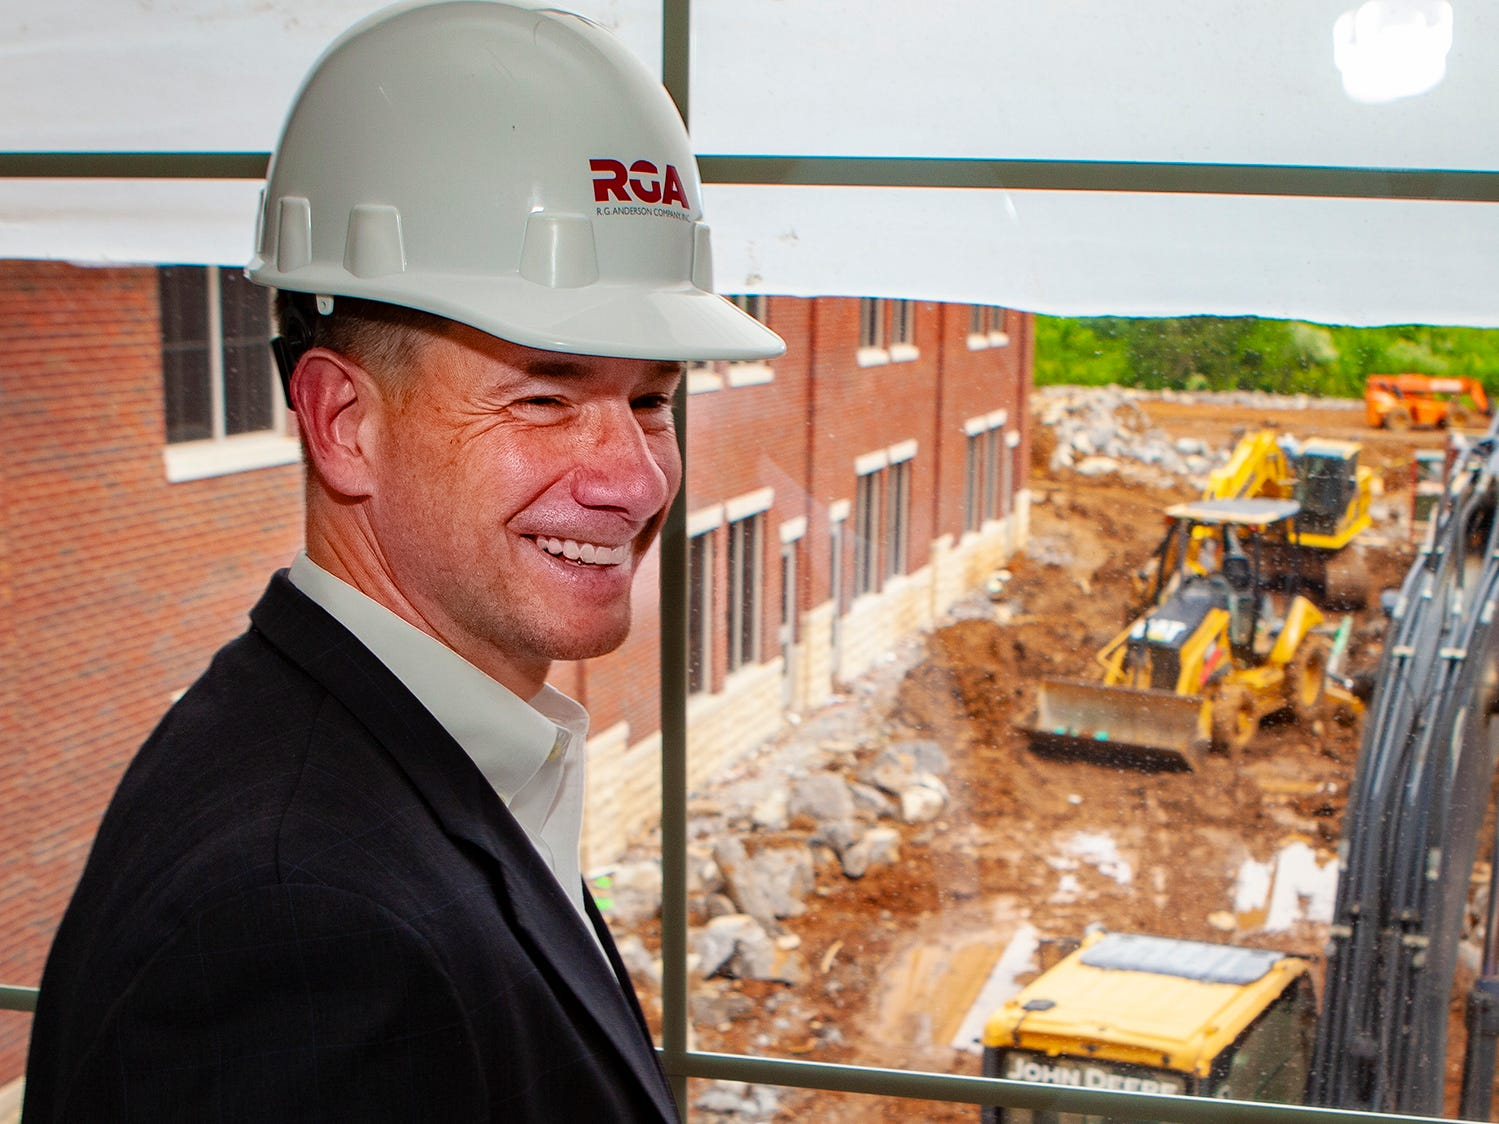 Murfreesboro City Councilman Ronnie Martin looks over construction at Salem Elementary on Friday, May 10, 2019. Murfreesboro City Schools' 13th campus will open in July 2019.